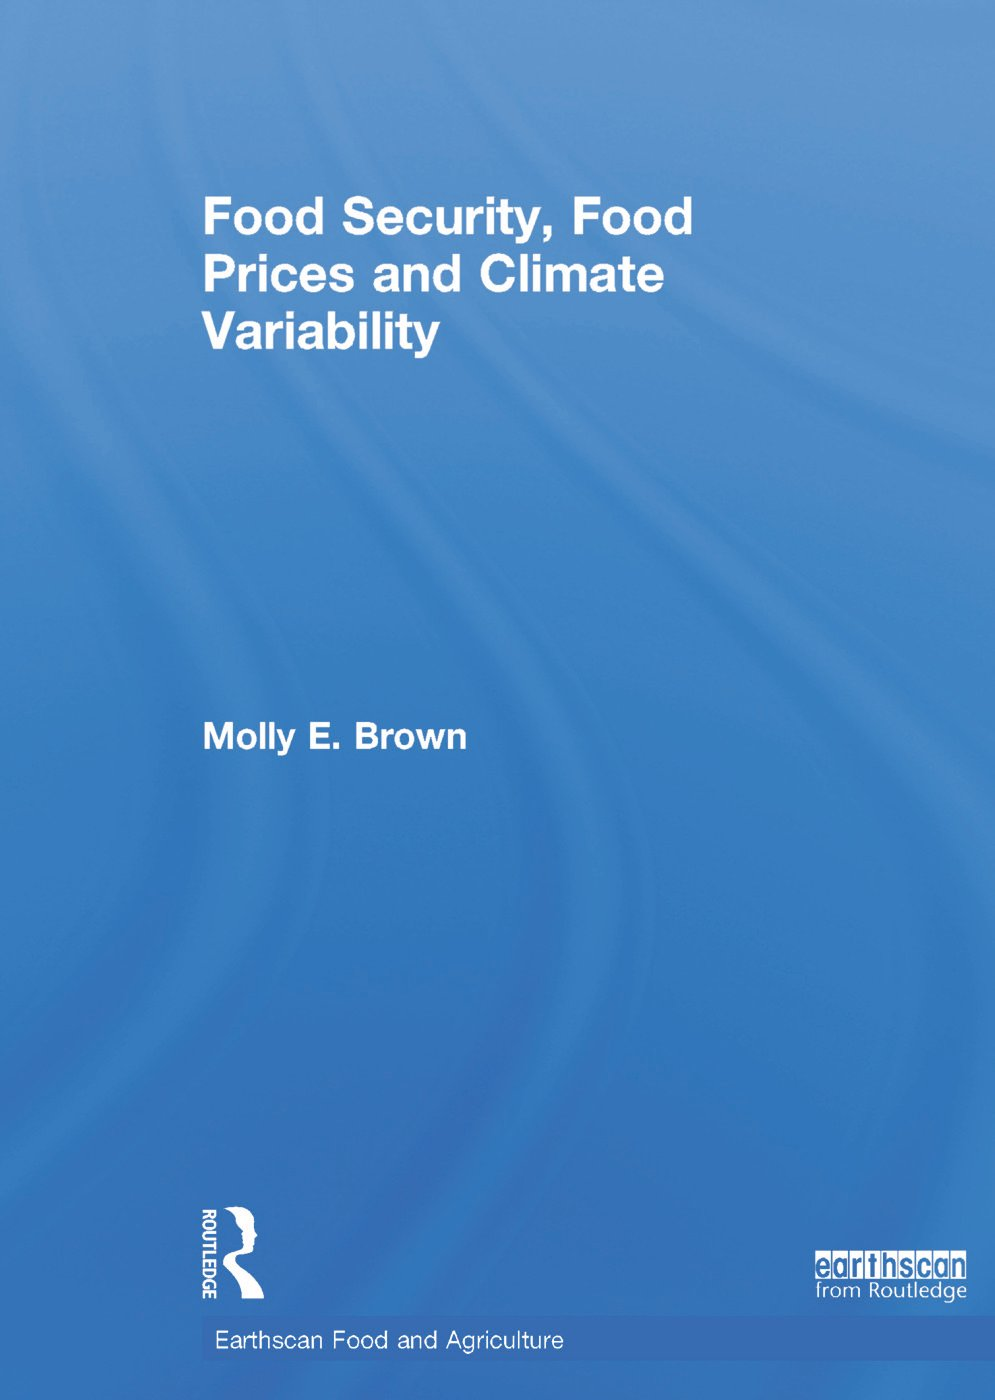 Food Security, Food Prices and Climate Variability book cover